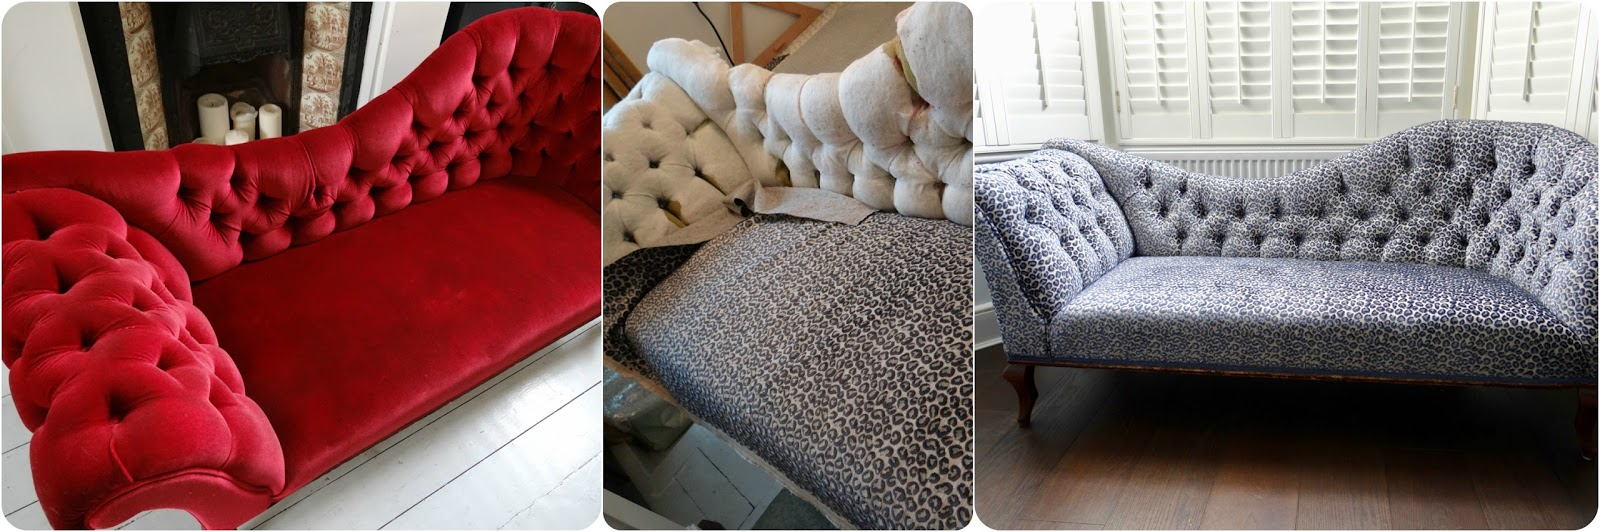 Beautiful Deep Red Chaise Longue In Need Of A Change Fabric I Stripped And Recovered It Colefax Fowler Wilde Animal Print Velvet Blue